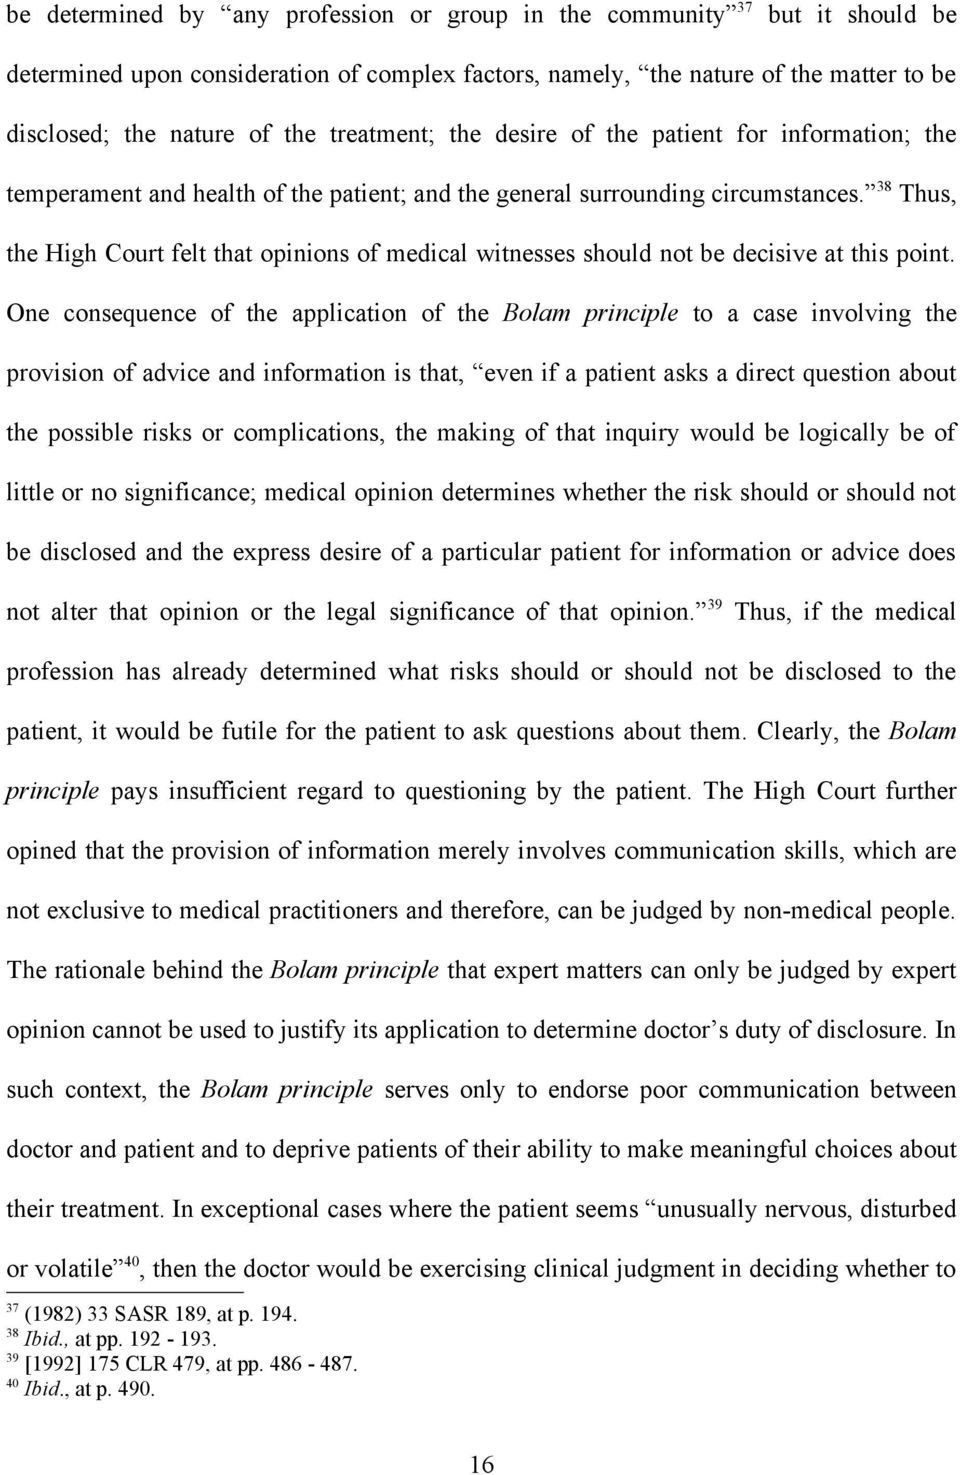 38 Thus, the High Court felt that opinions of medical witnesses should not be decisive at this point.